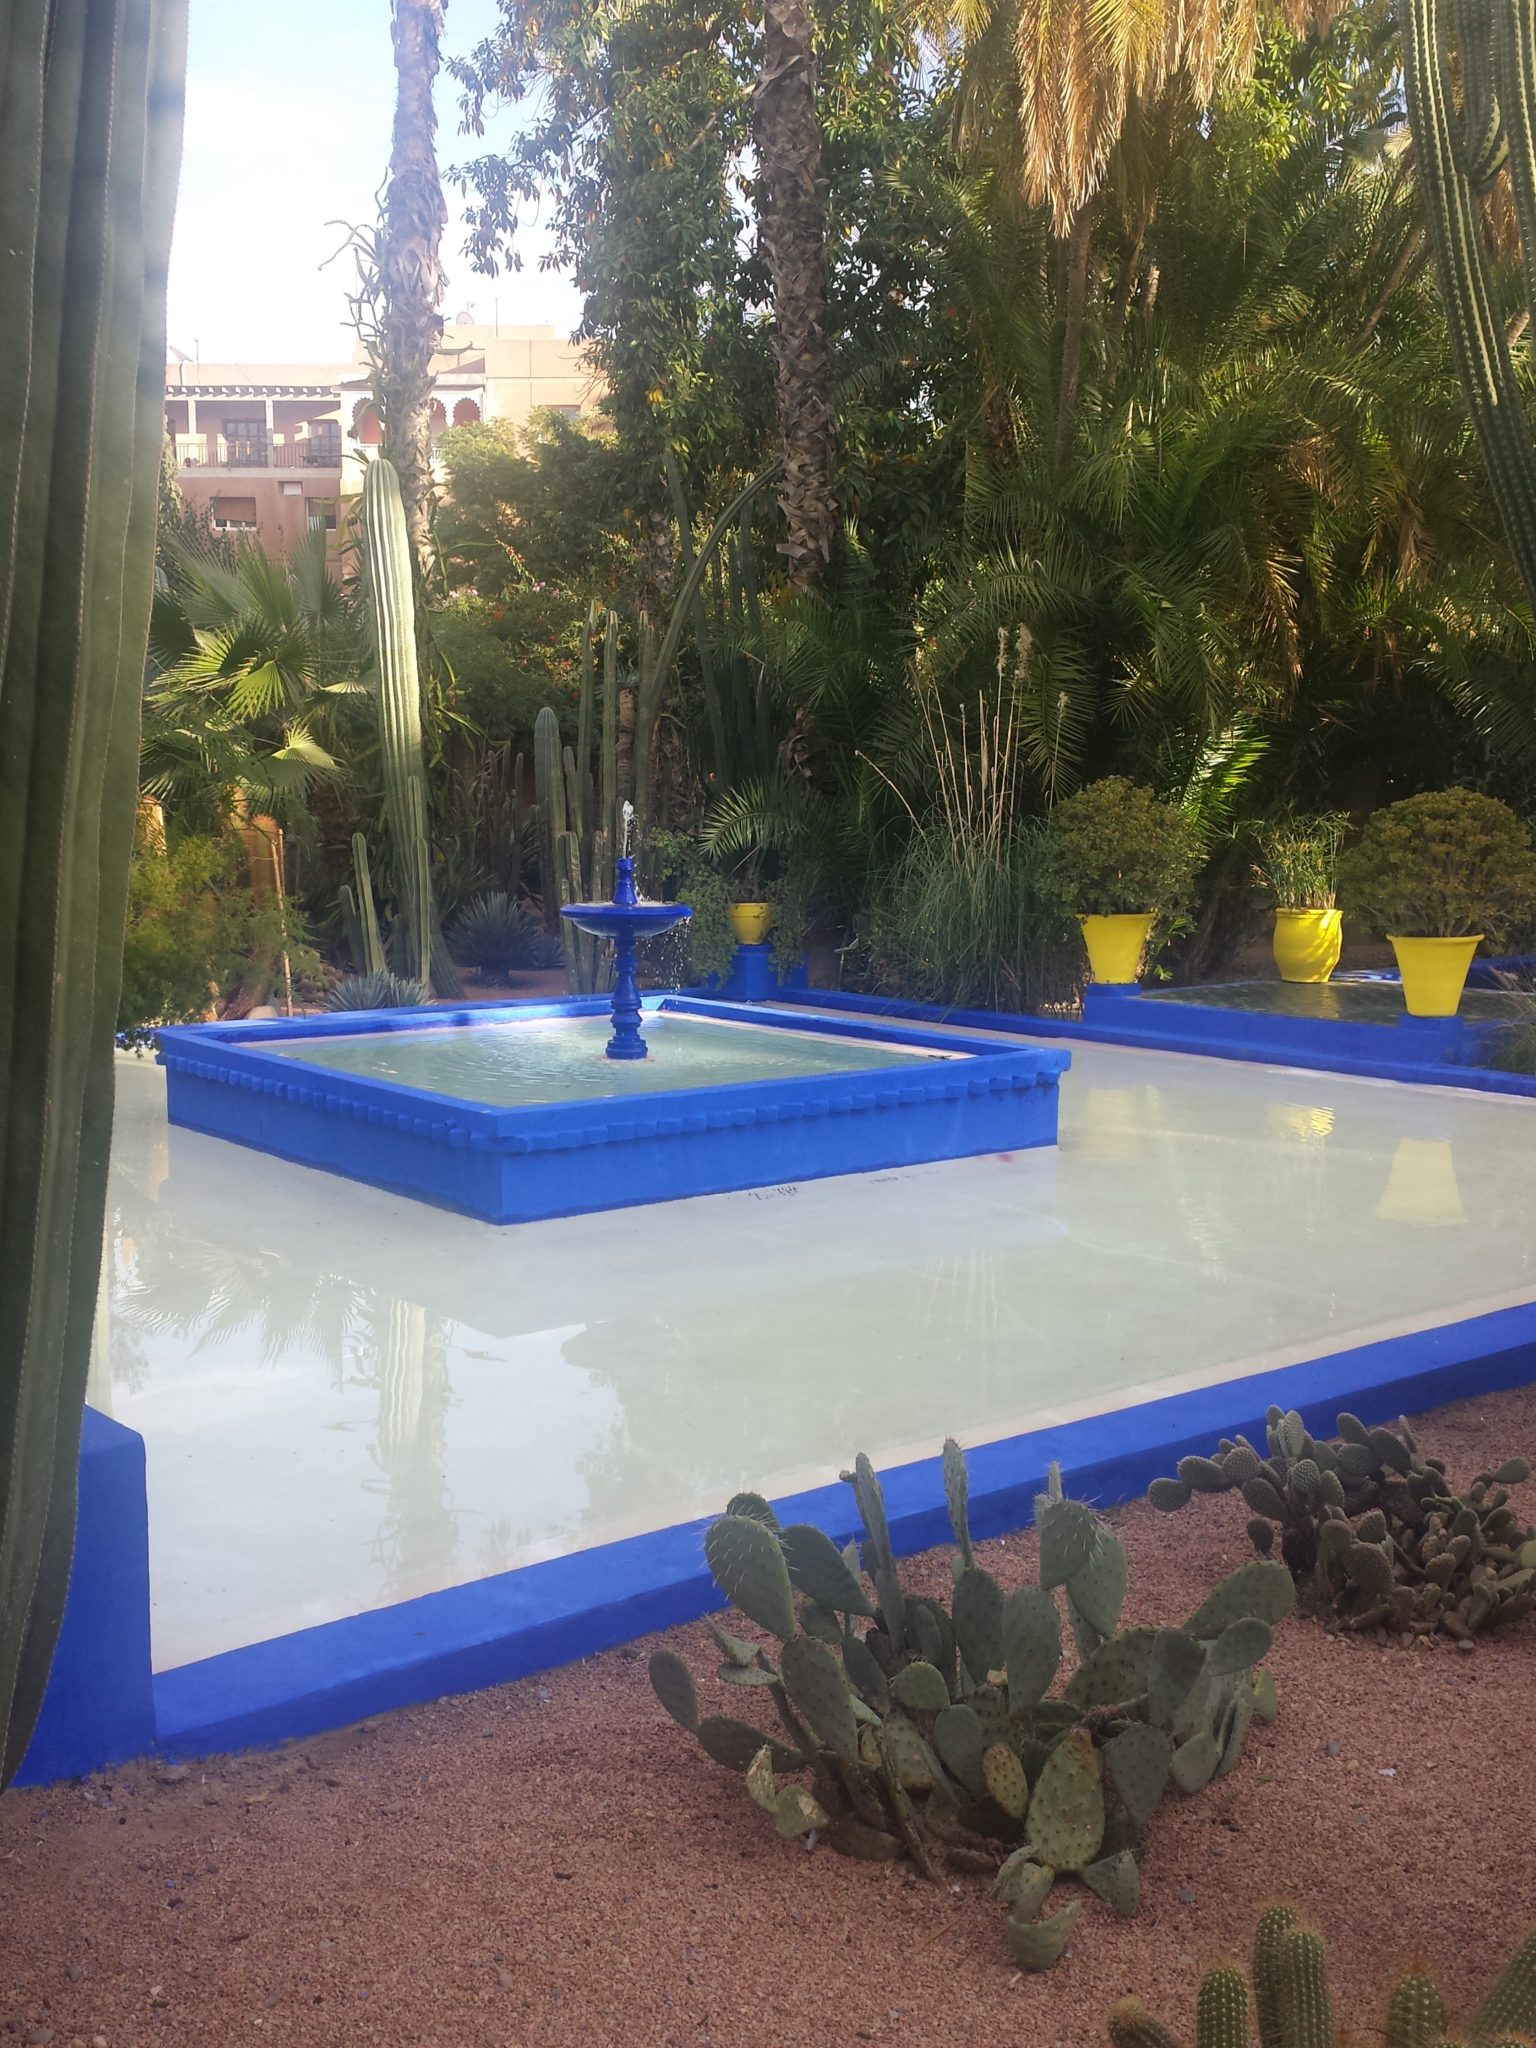 Fontaine Jardin Majorelle, Marrackech